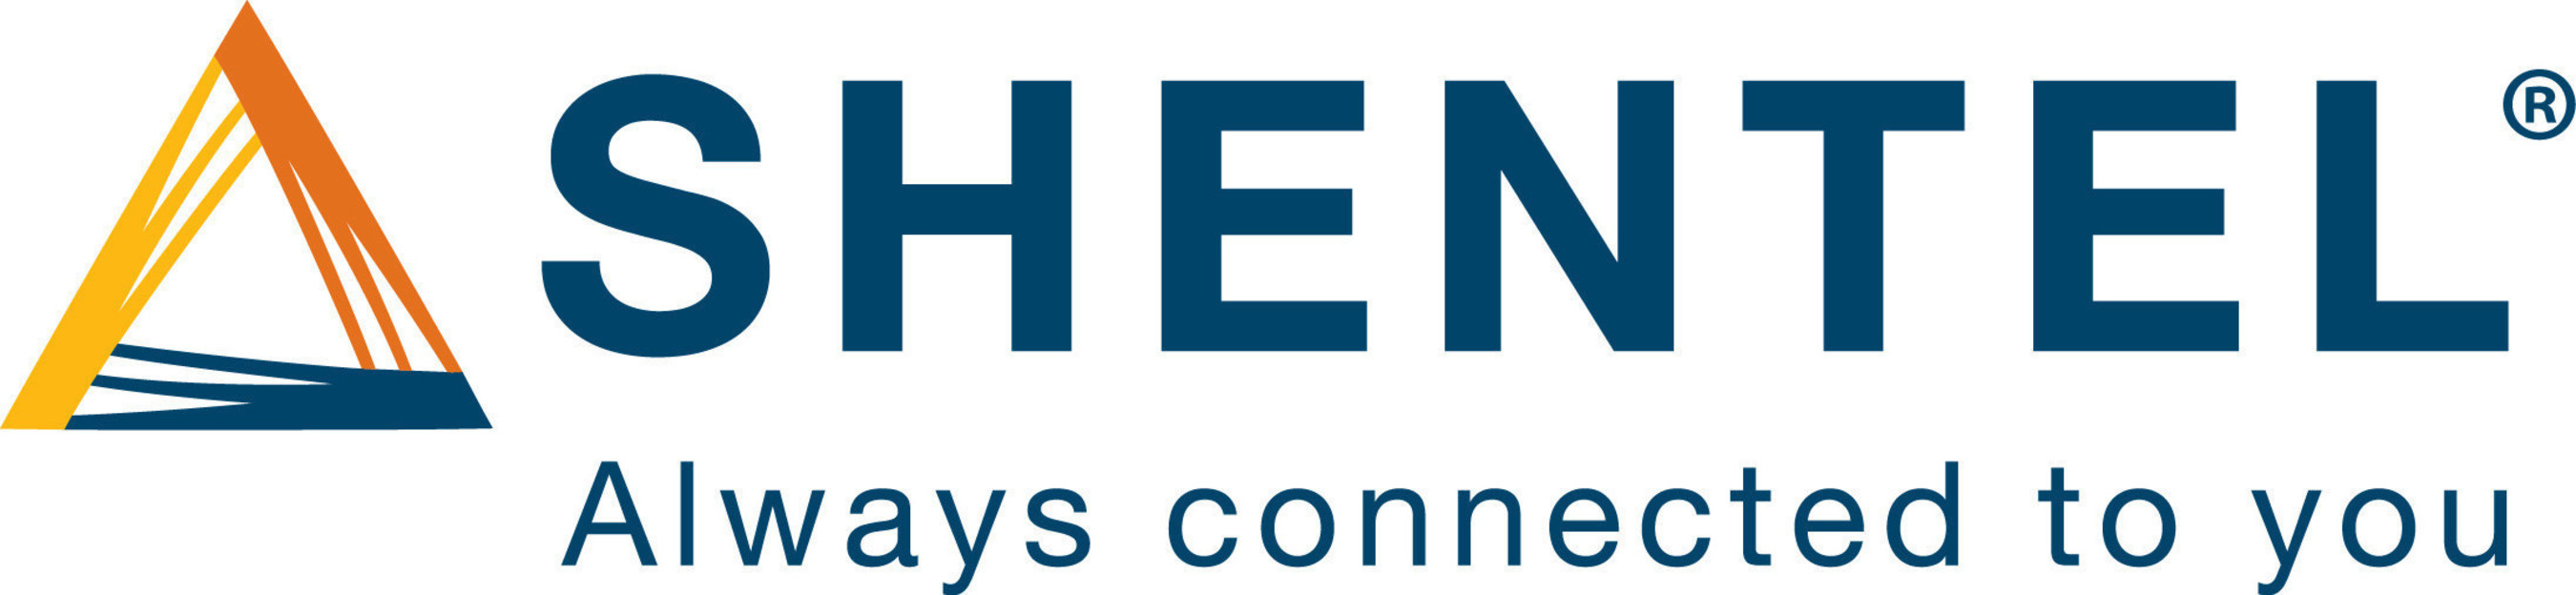 Shentel Completes Transaction to Acquire NTELOS Holdings Corp.